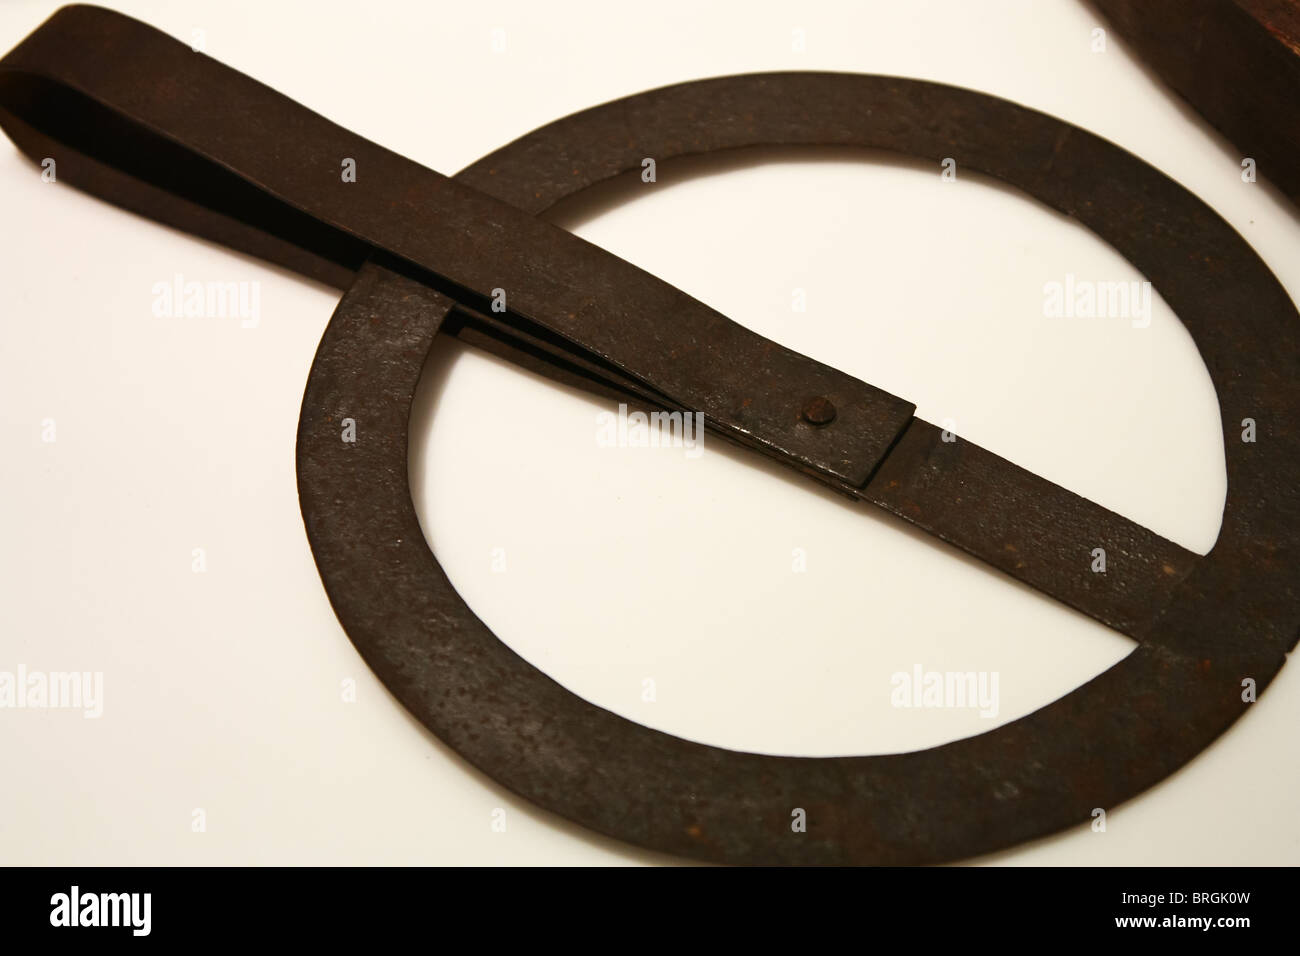 traveller hand forged - Stock Image